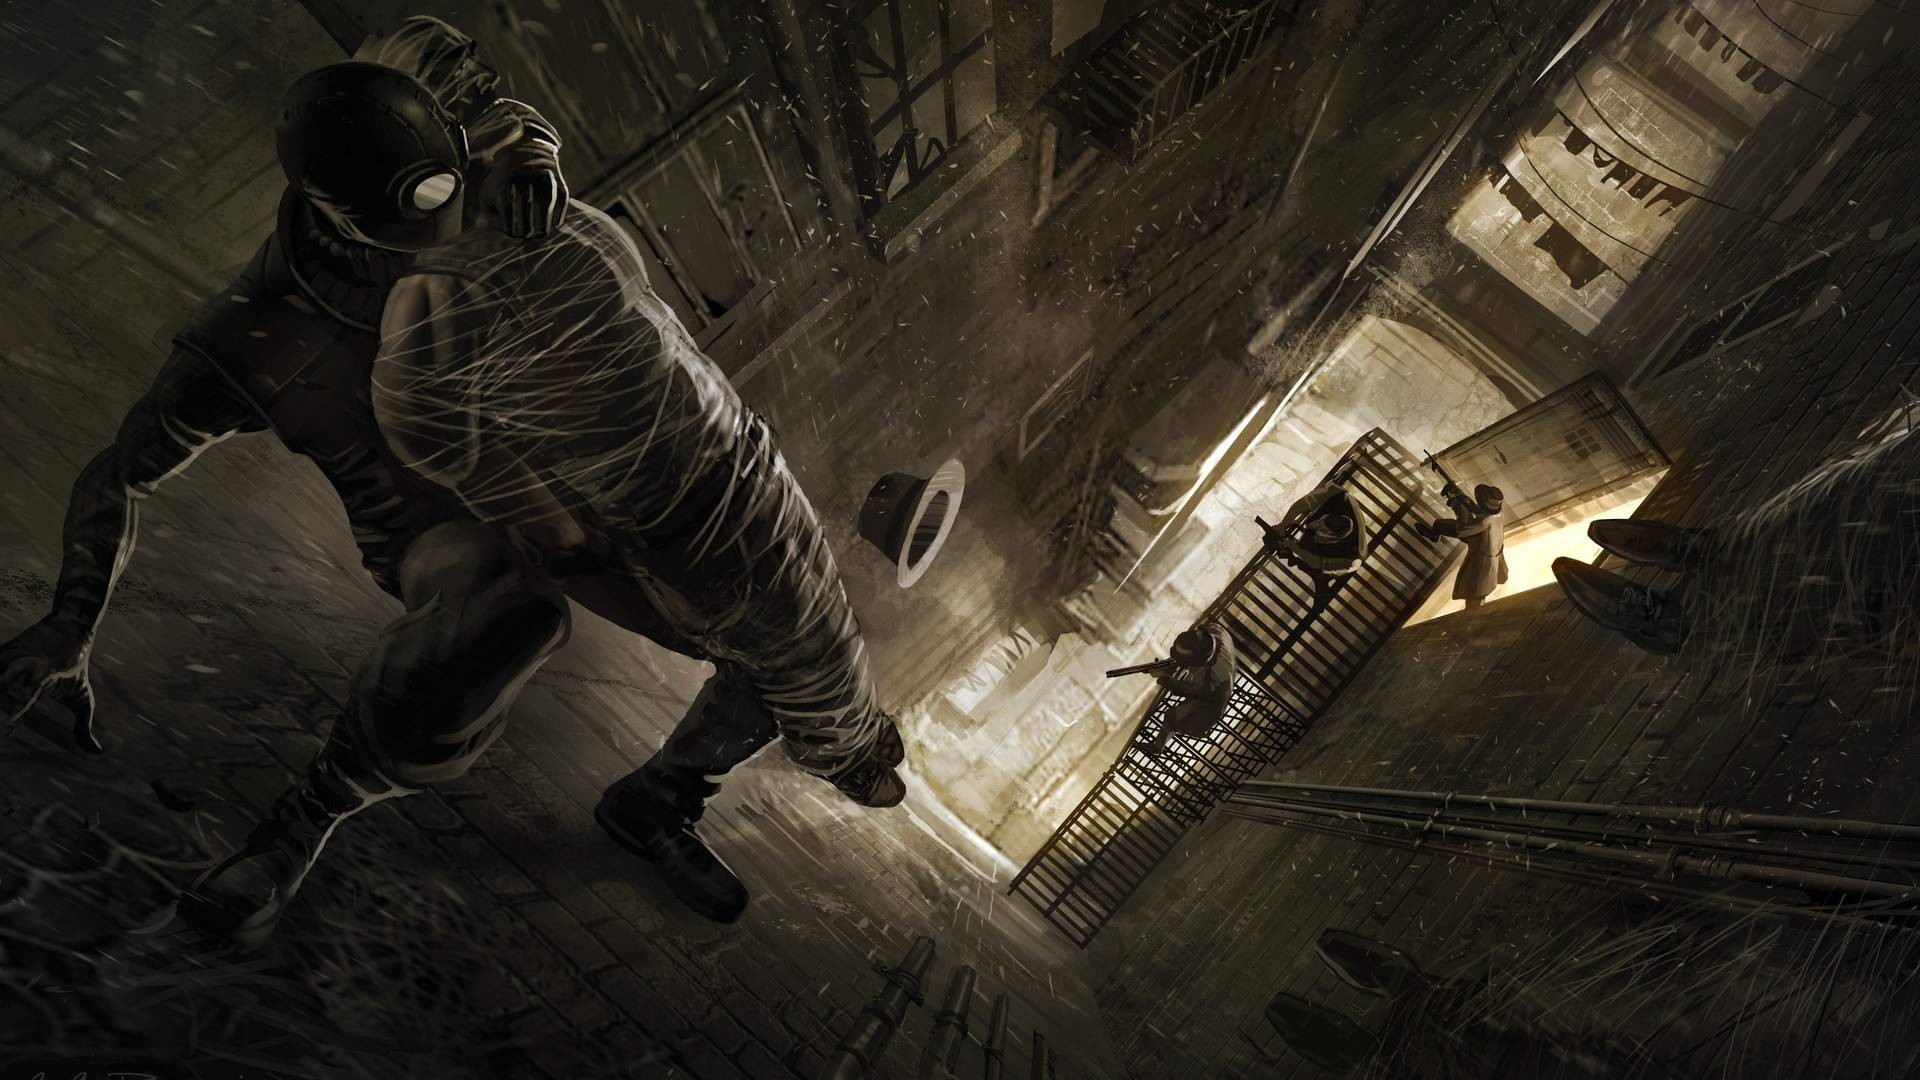 Spider Man Noir Wallpaper 69 Images